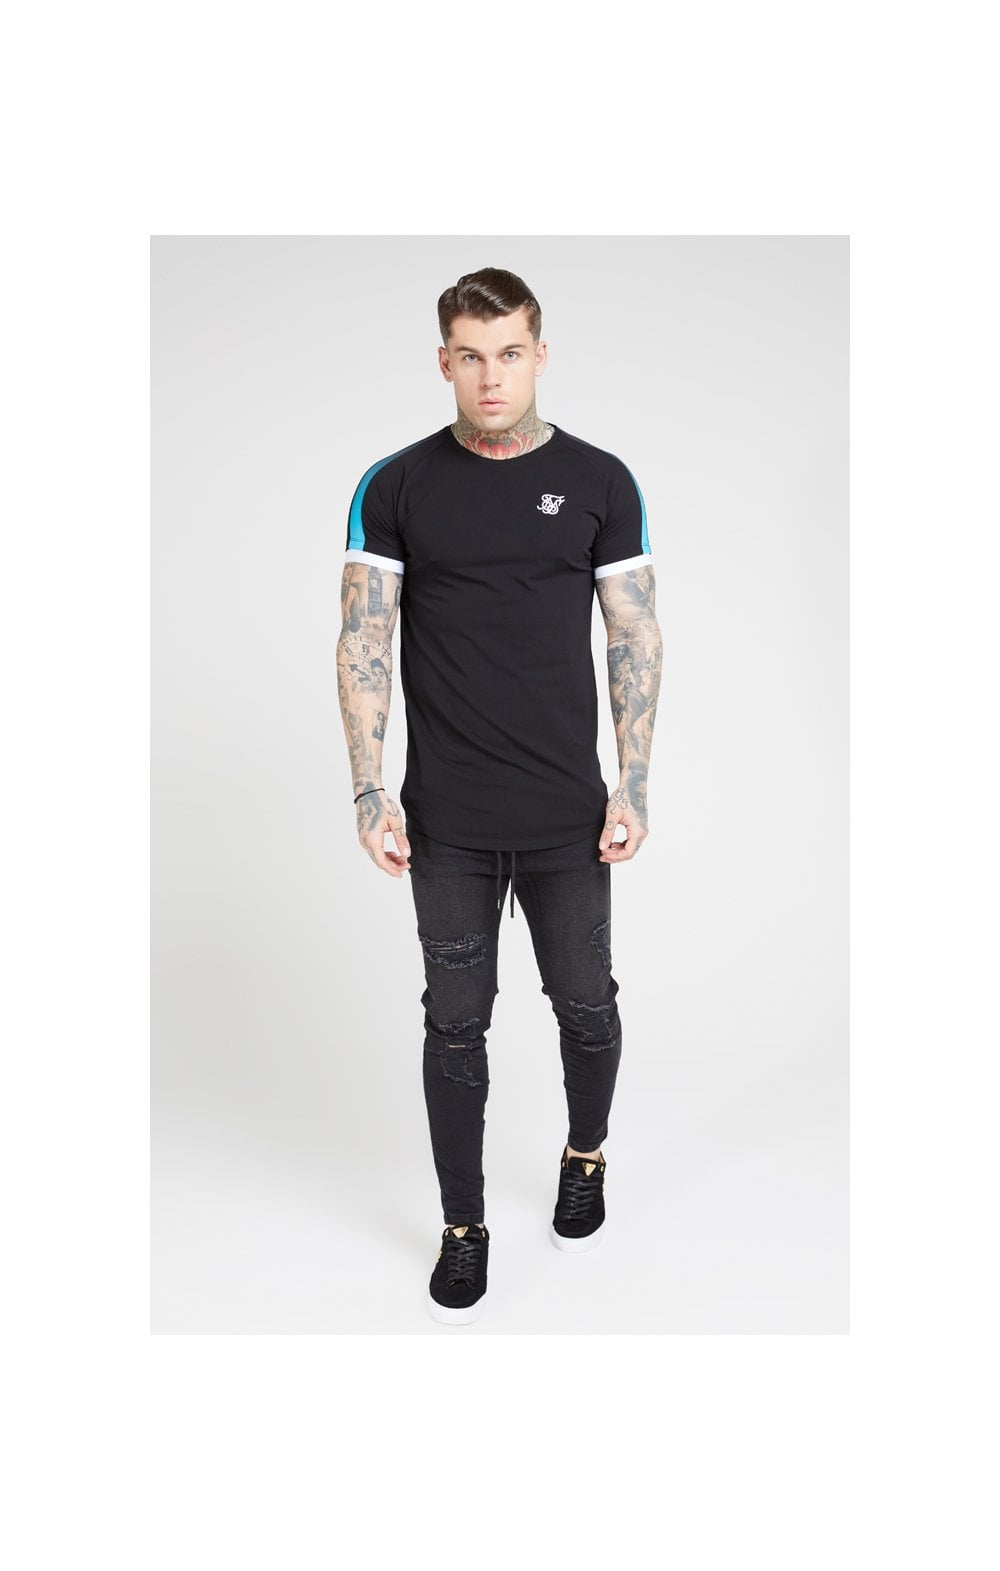 SikSilk S/S Inset Cuff Fade Panel Tech Tee – Black & Teal (1)